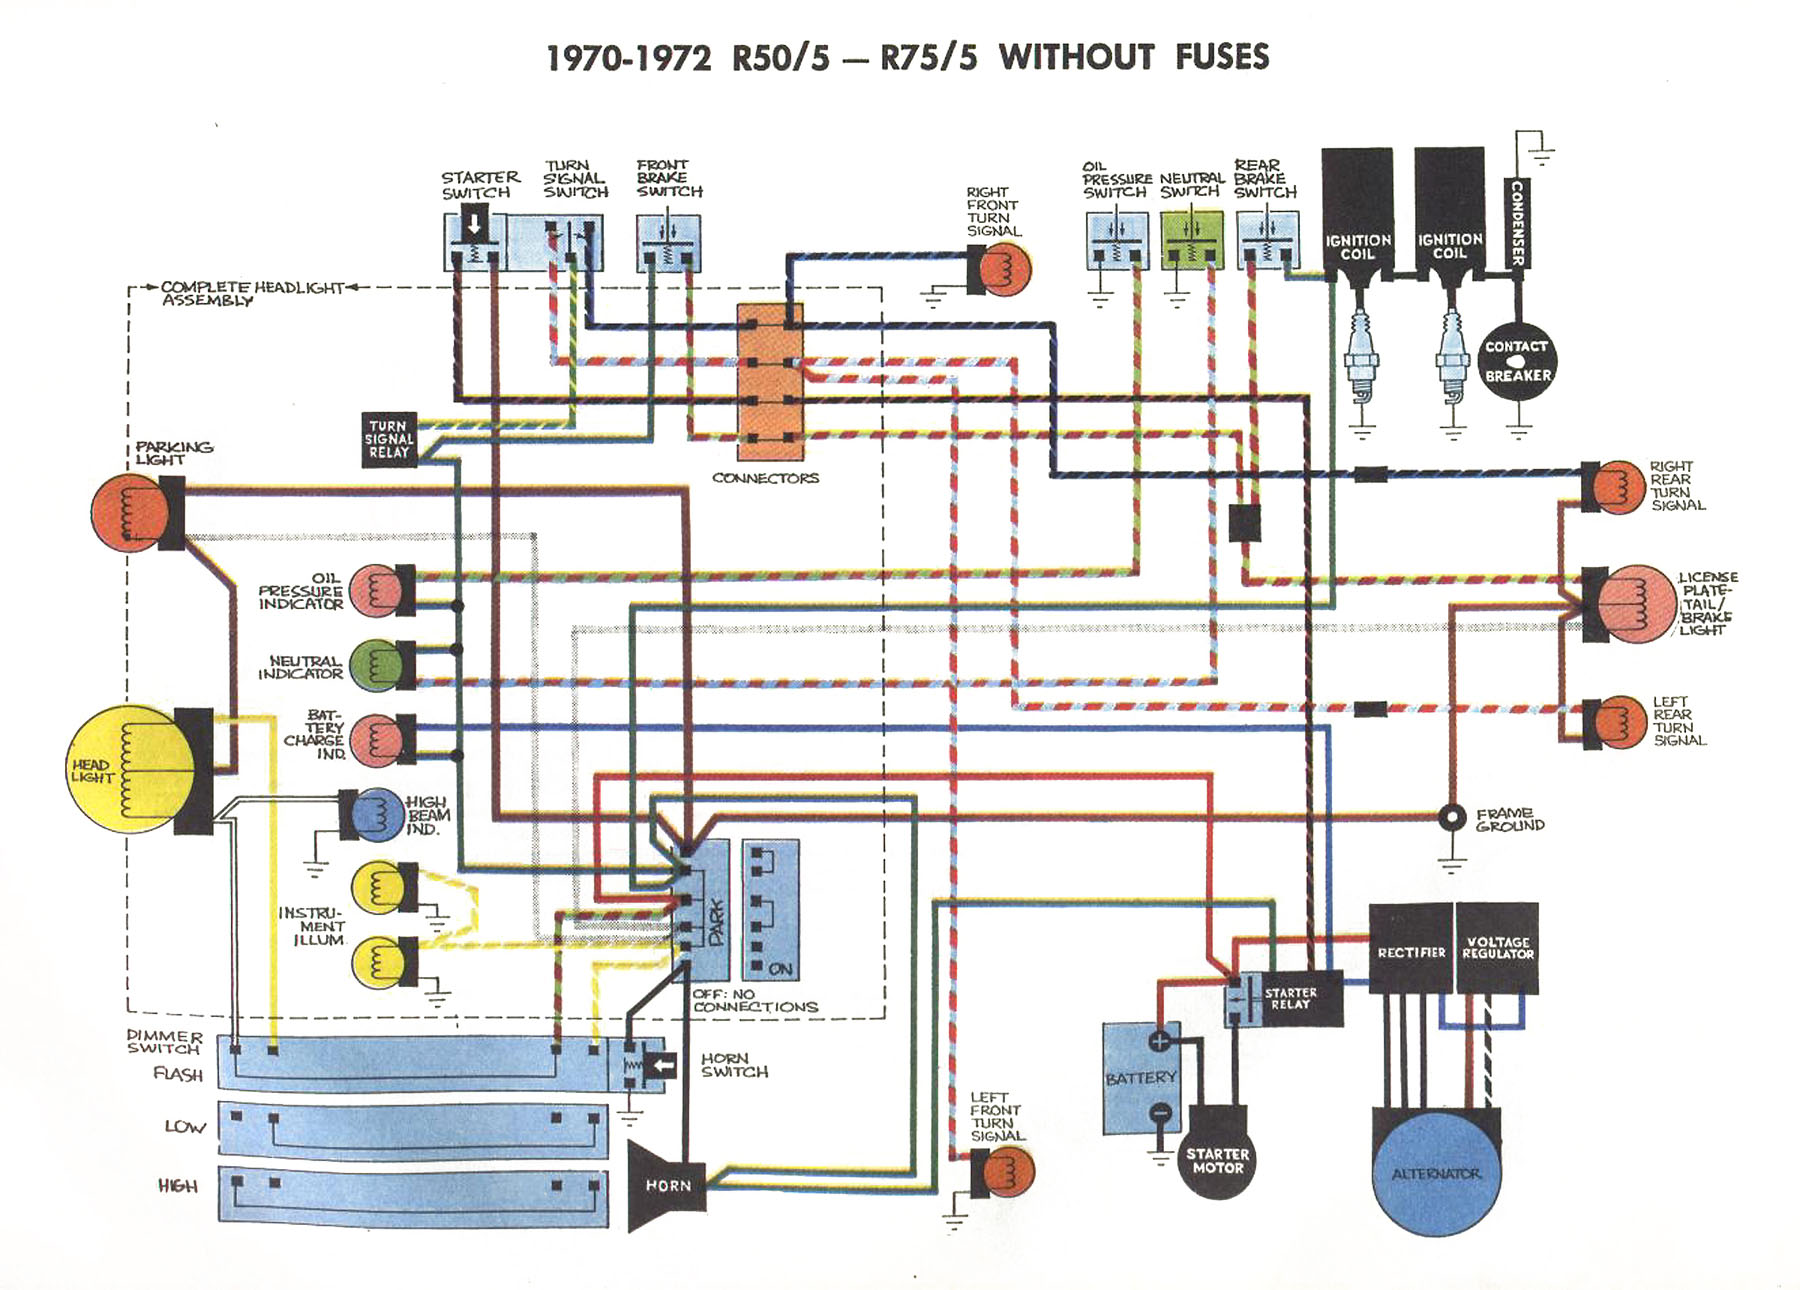 5_unfused_schematic 5 united articles wiring diagrams bmw r100 wiring diagram at gsmx.co